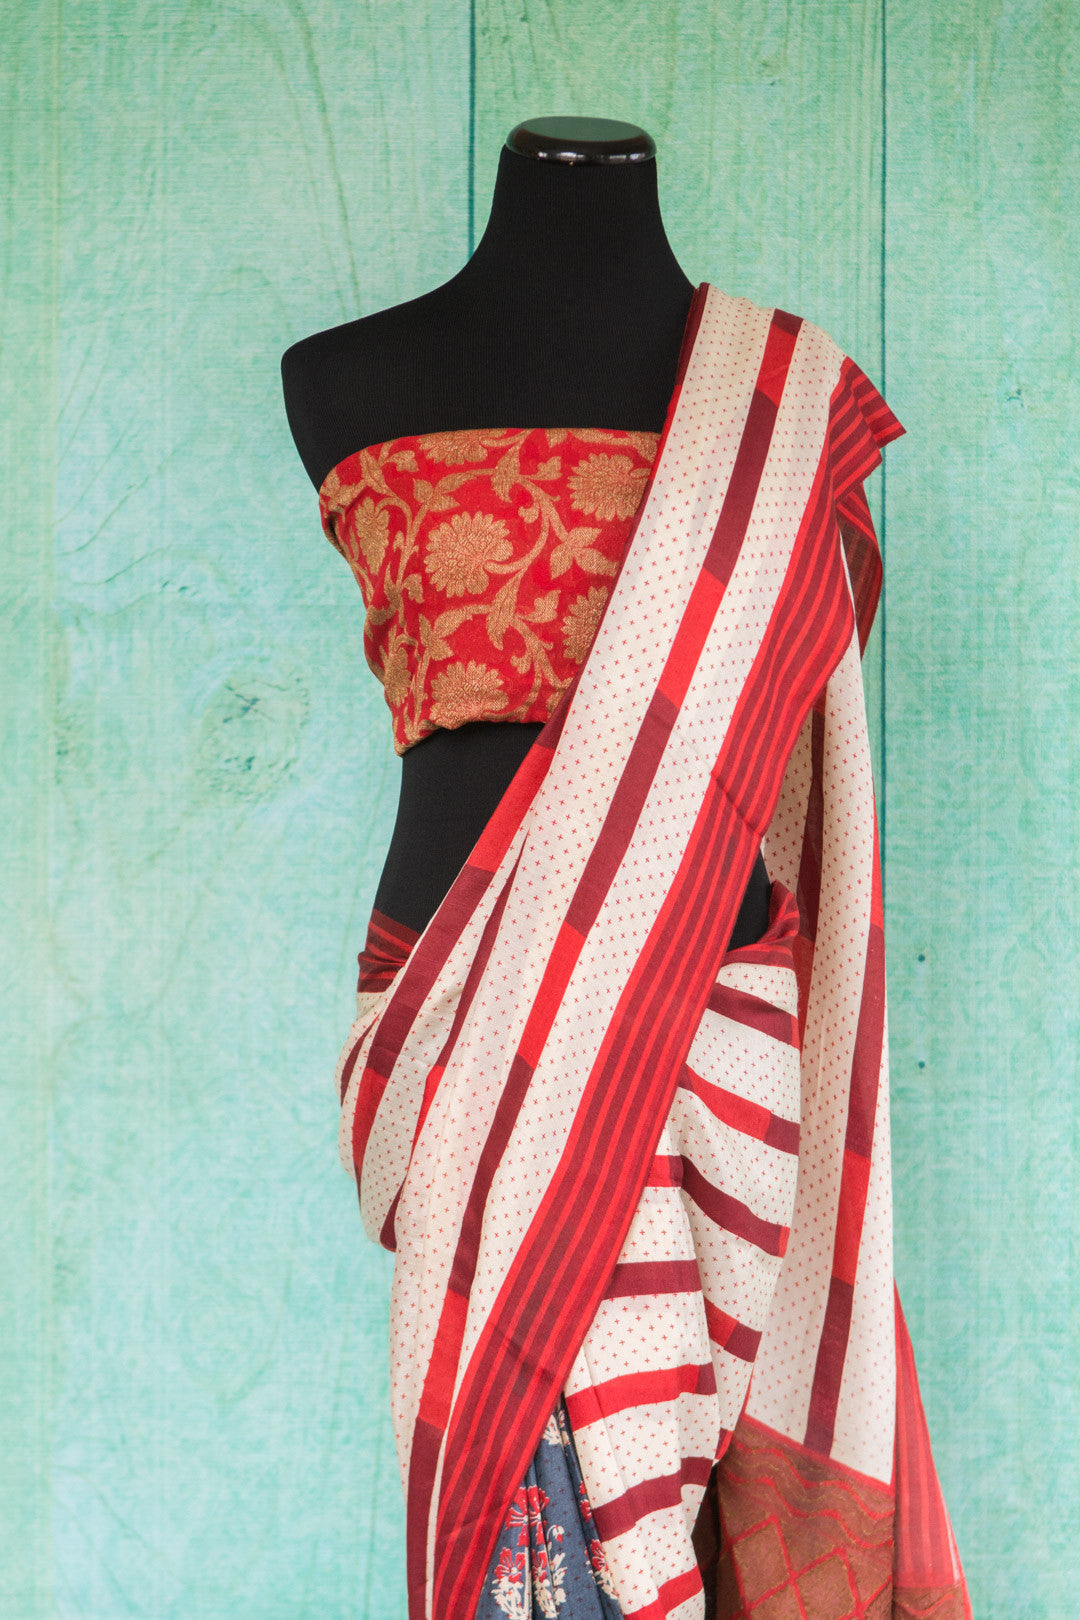 90c033Half striped & half floral saree online in USA at Pure Elegance. The red, white and blue woven saree from Banaras makes for a bold party wear Indian outfit.